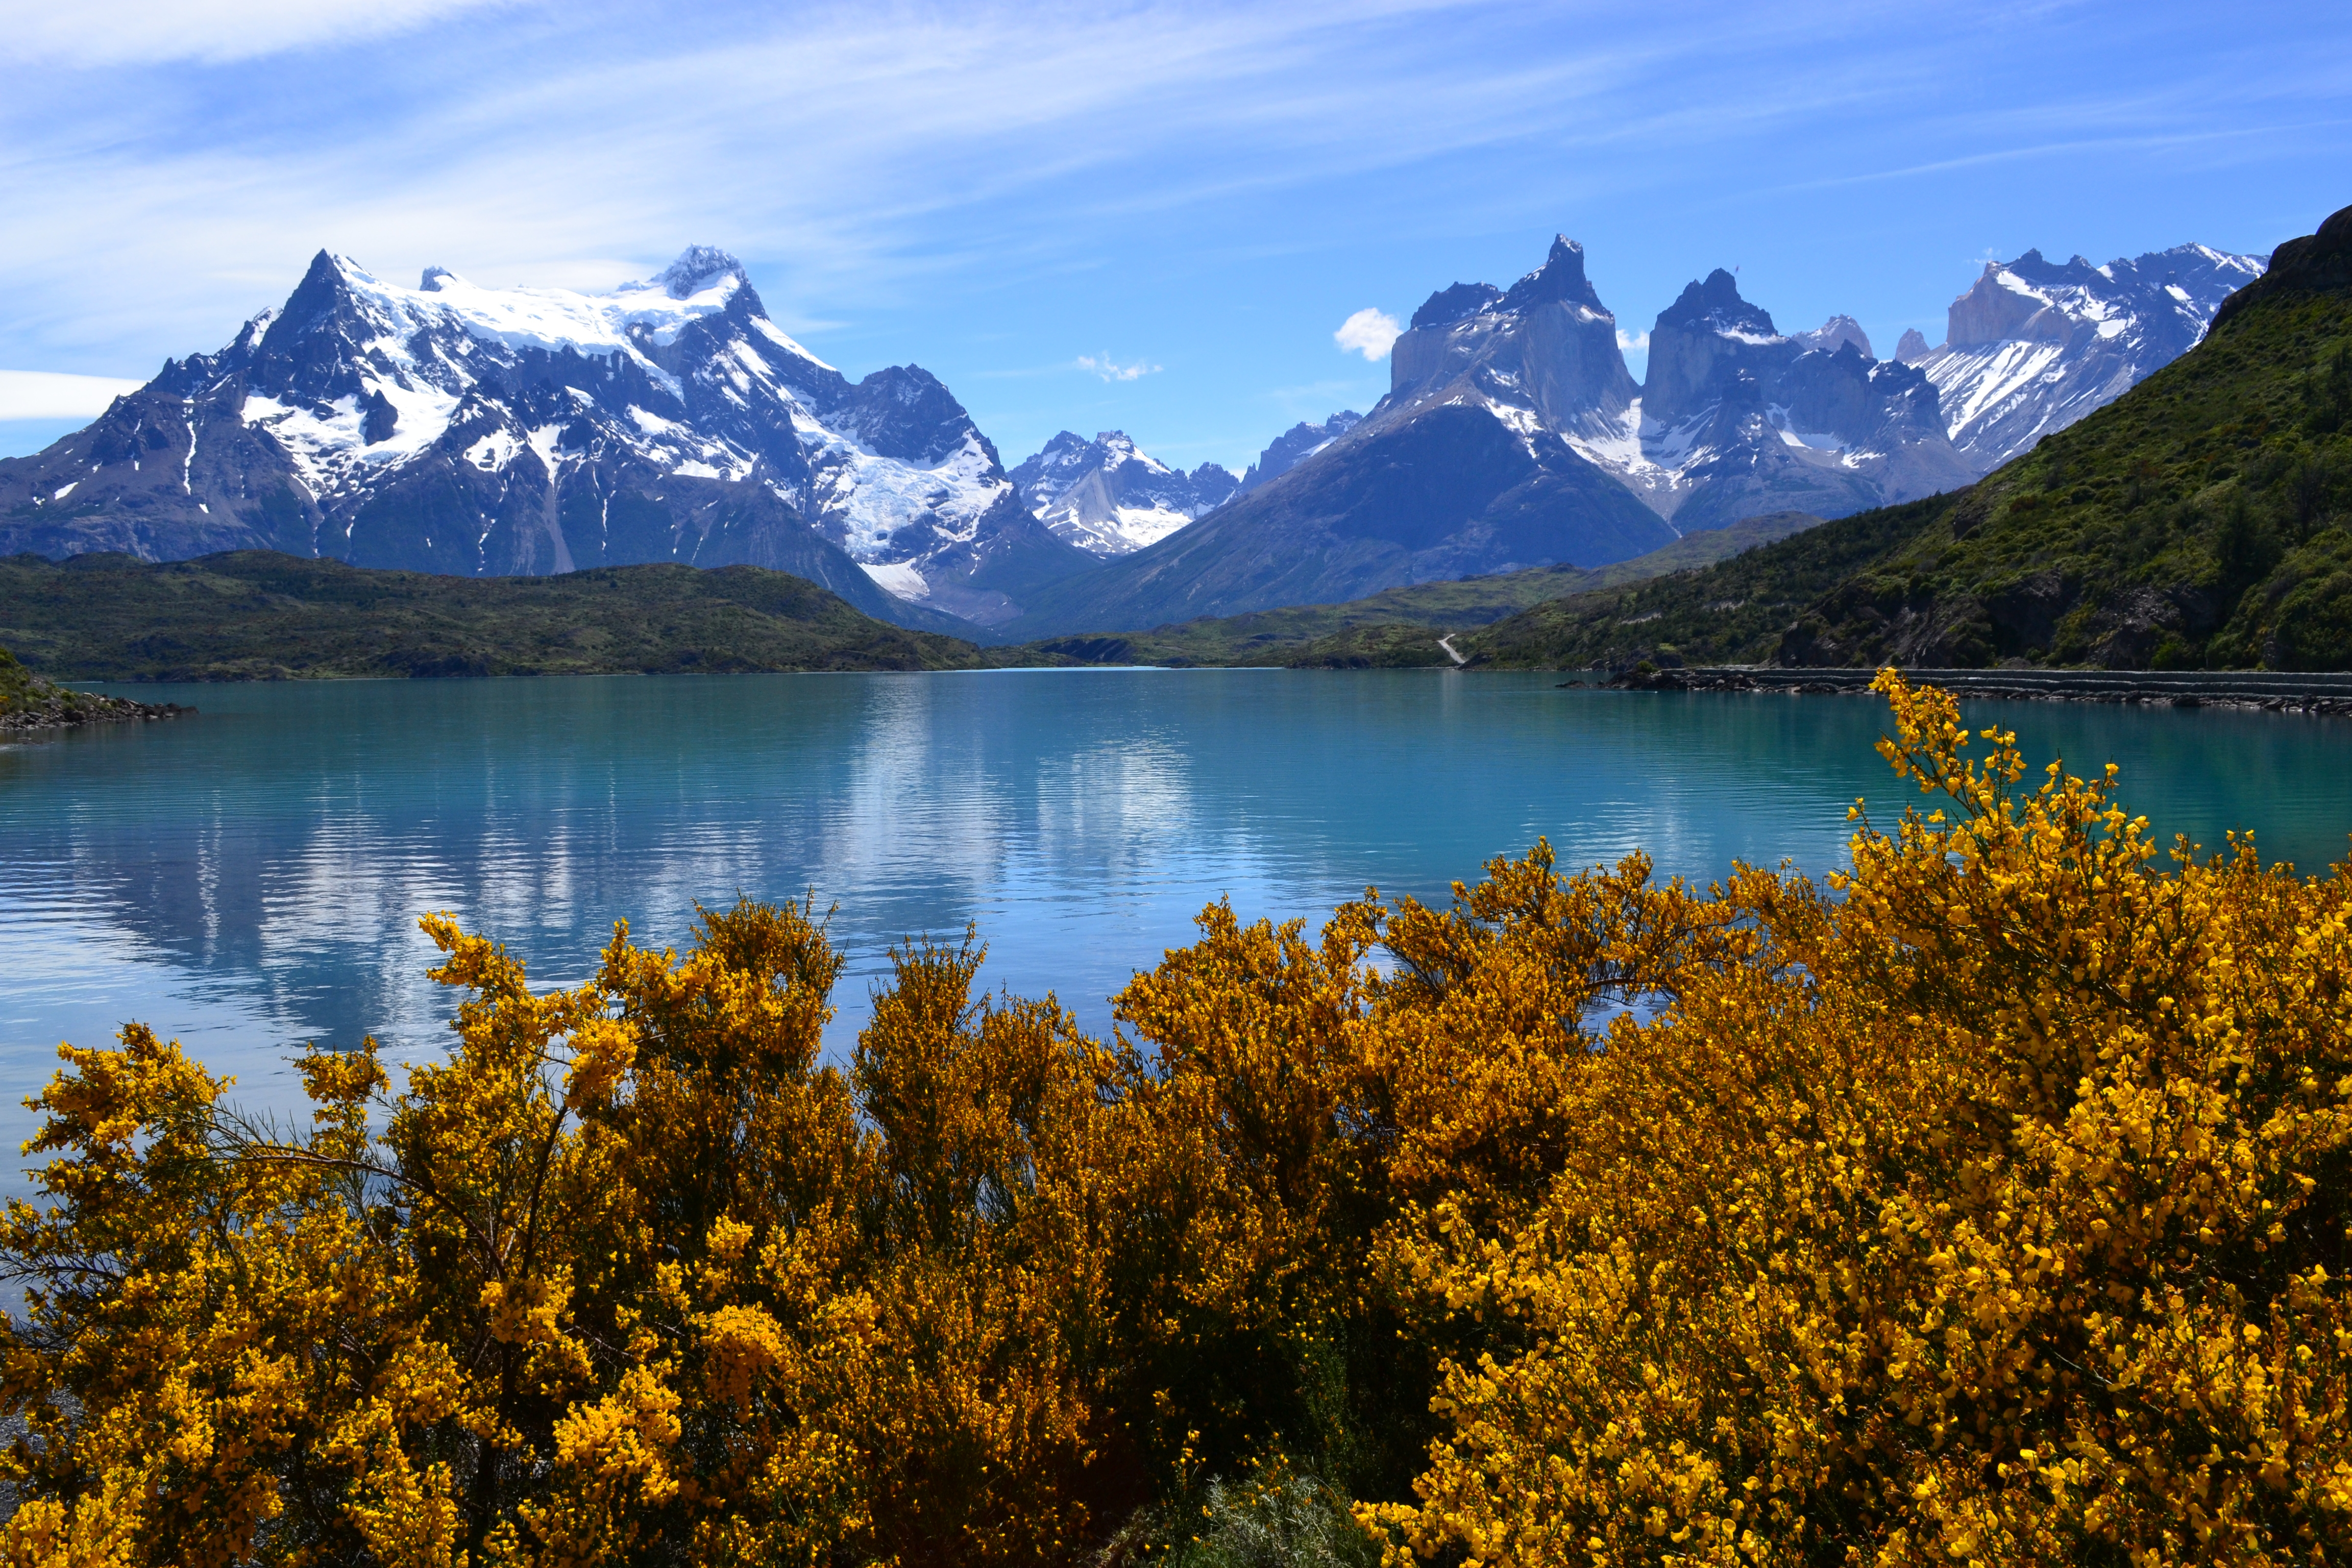 156652 download wallpaper Lake, Nature, Mountains screensavers and pictures for free